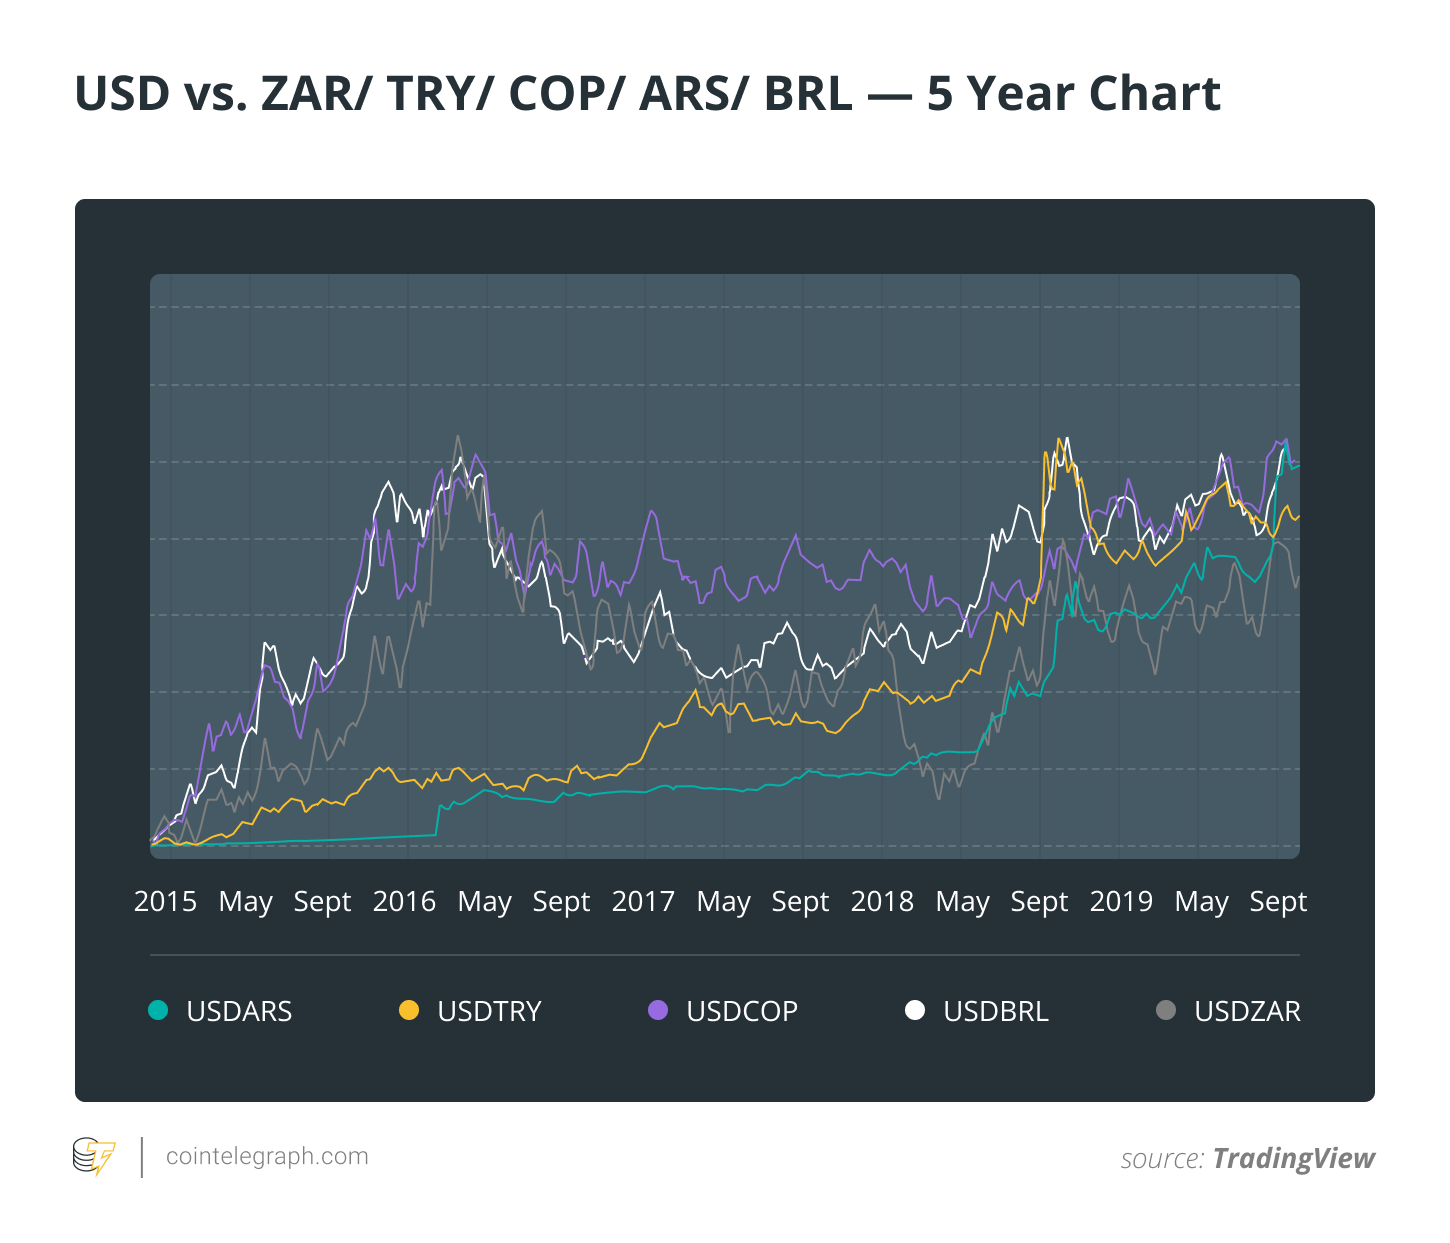 USD vs. ZAR/ TRY/ COP/ ARS/ BRL